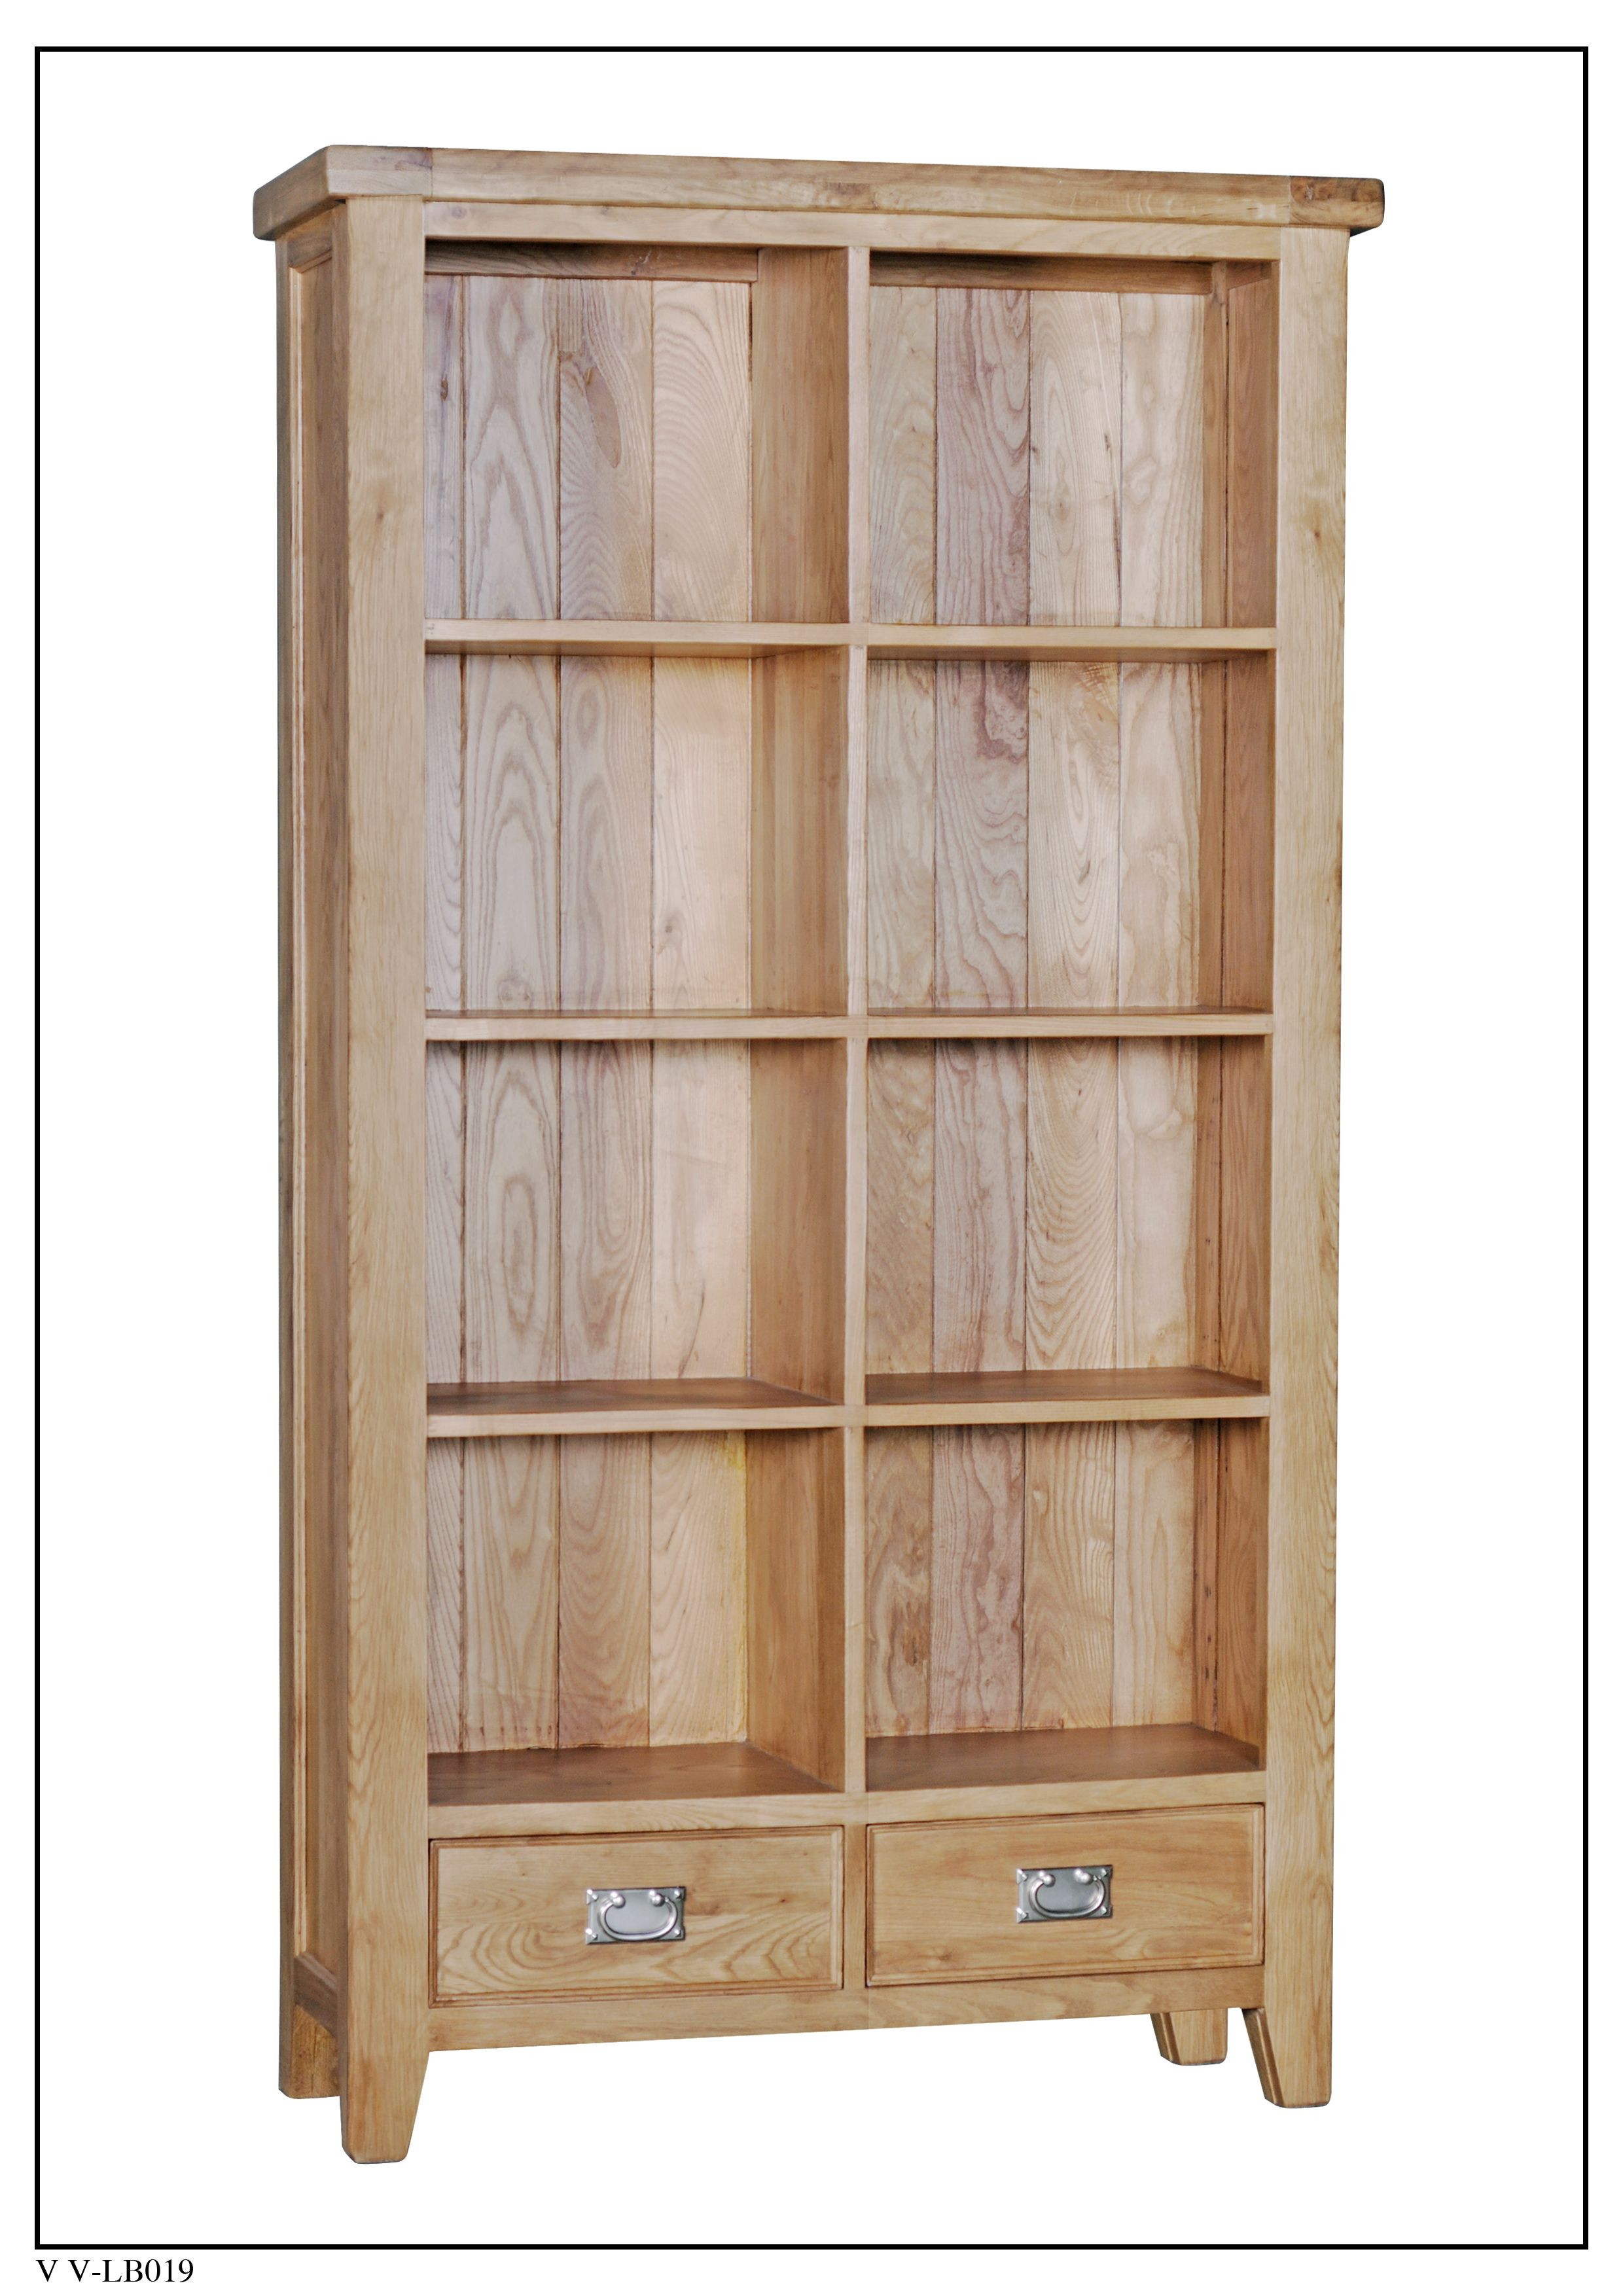 Elephant Furniture Vancouver Value Large Bookcase 1000mm X 360mm 1820mm High